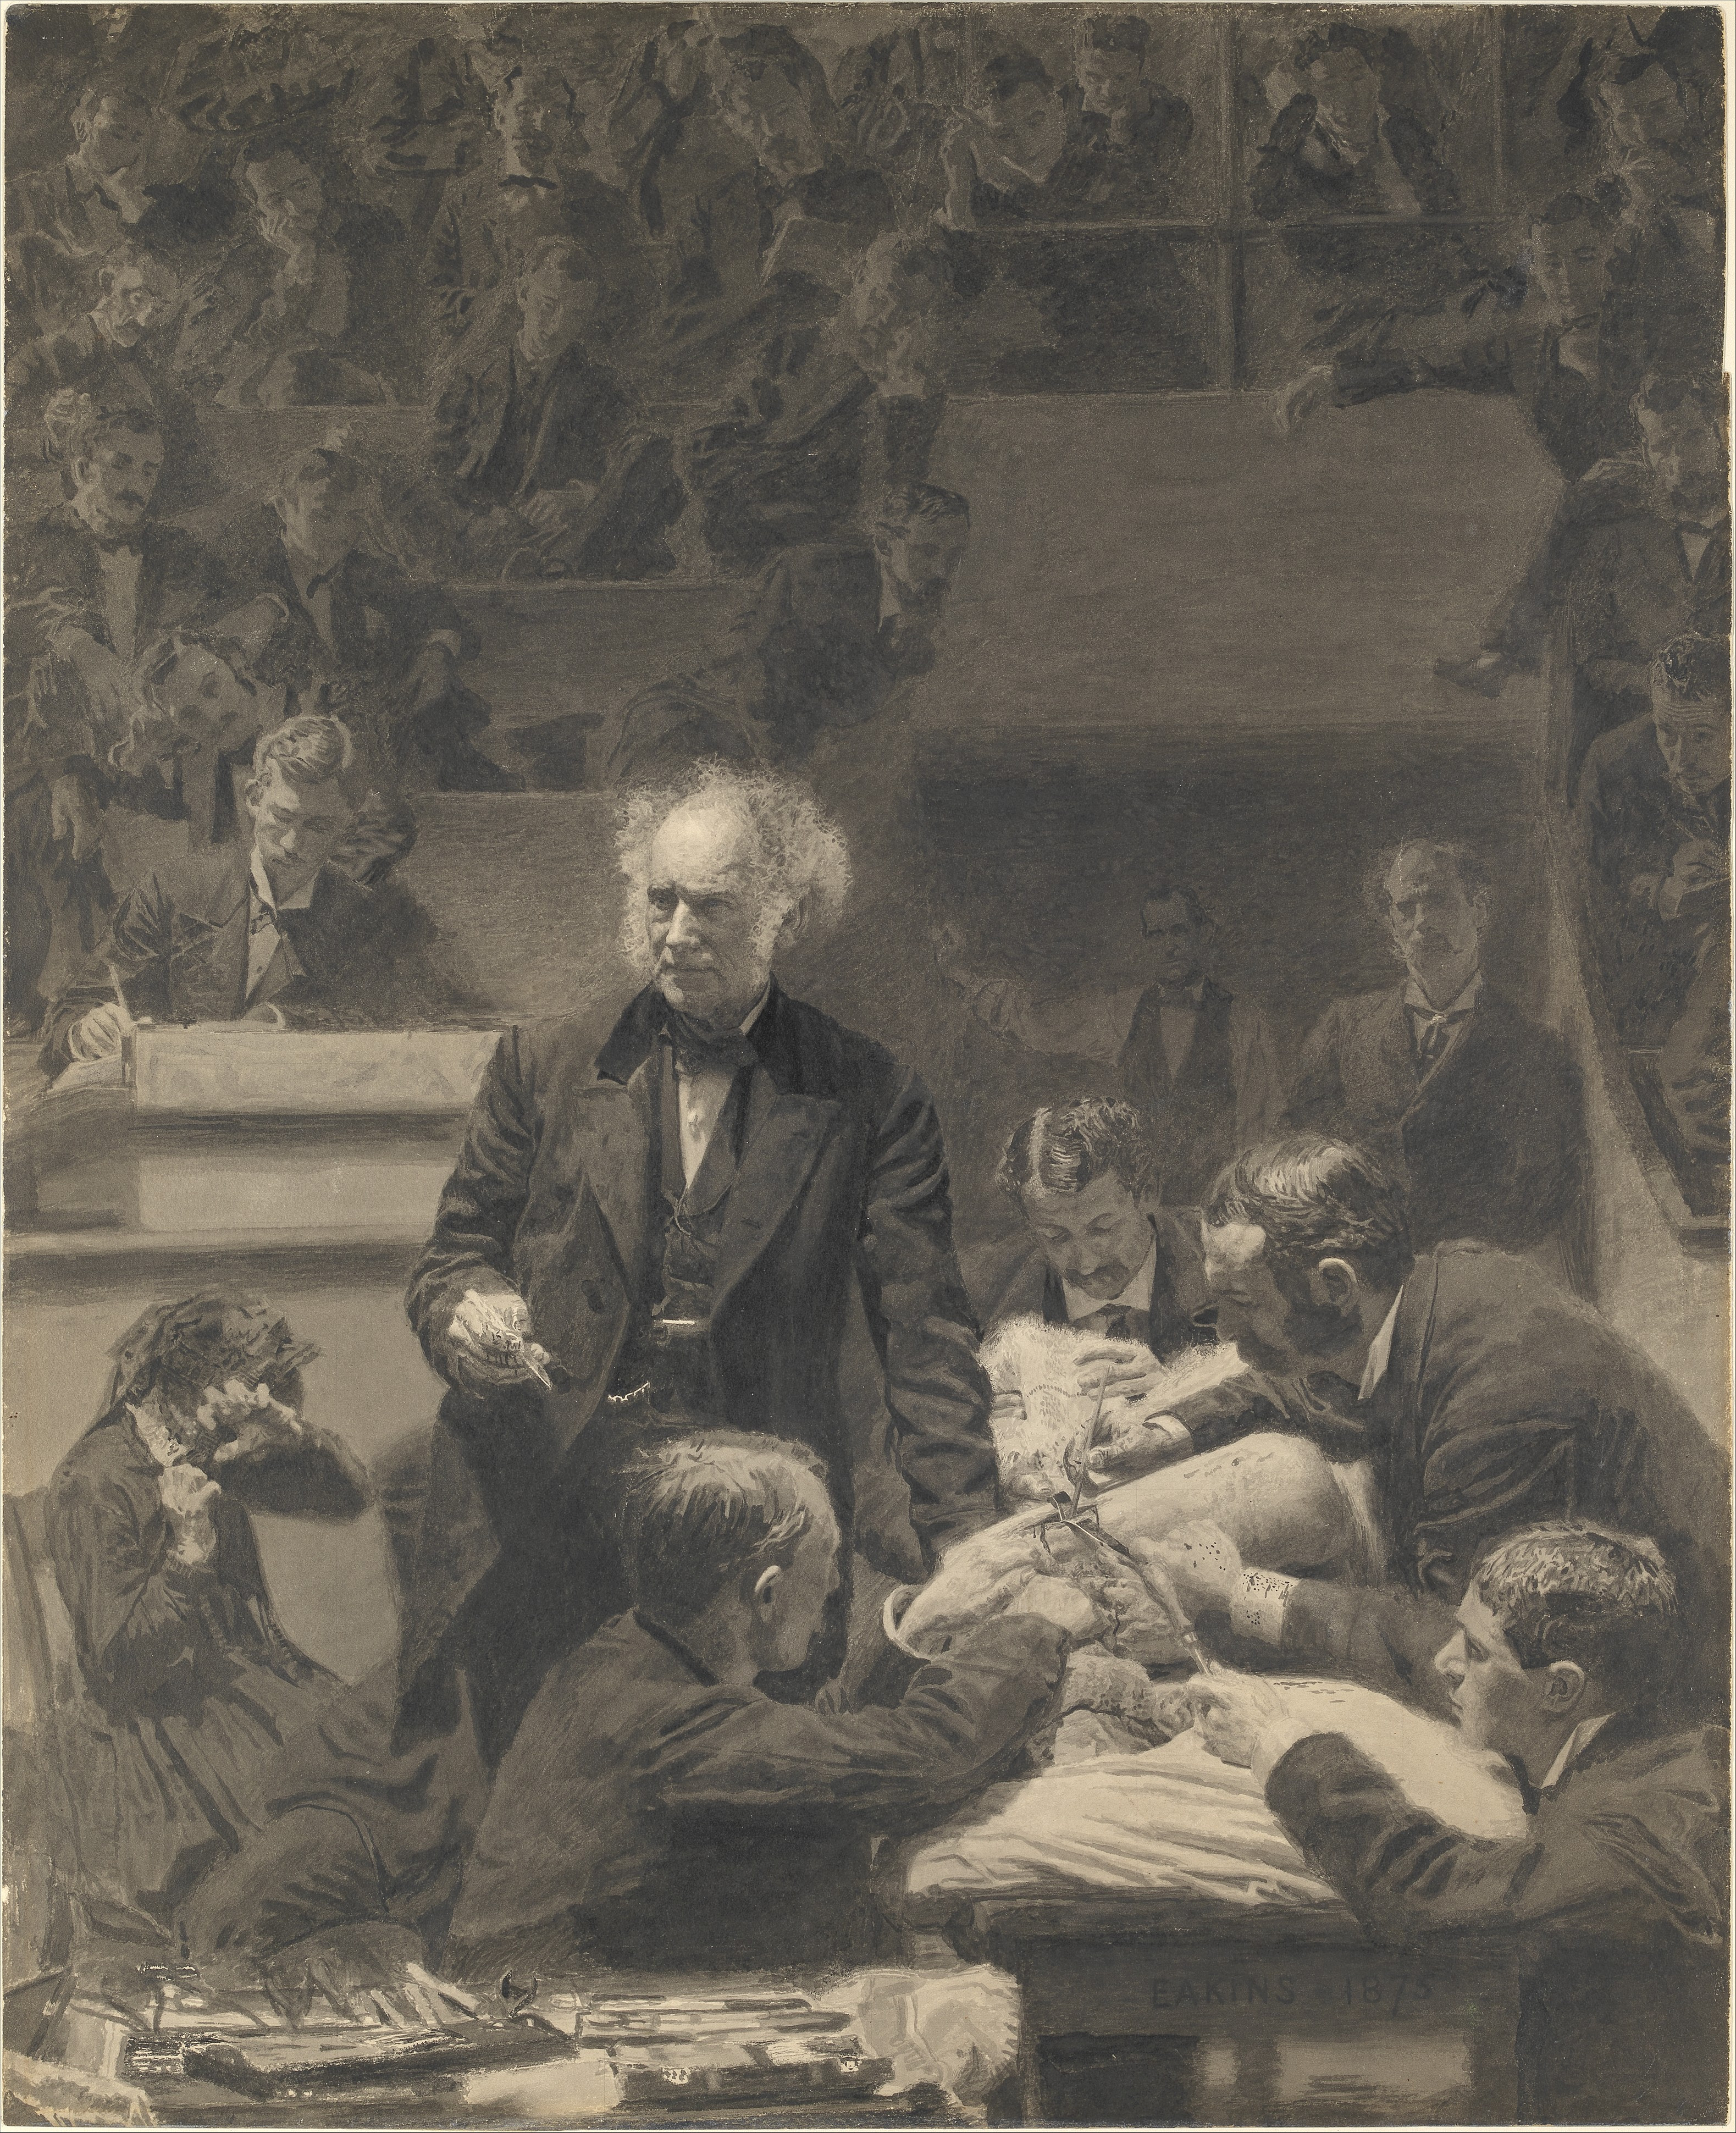 Thomas Eakins, Gross Clinic, 1875–76. India ink and watercolor on cardboard, 23 3/4 x 19 1/4 inches. Collection of the Metropolitan Museum of Art, New York; Rogers Fund, 1923.